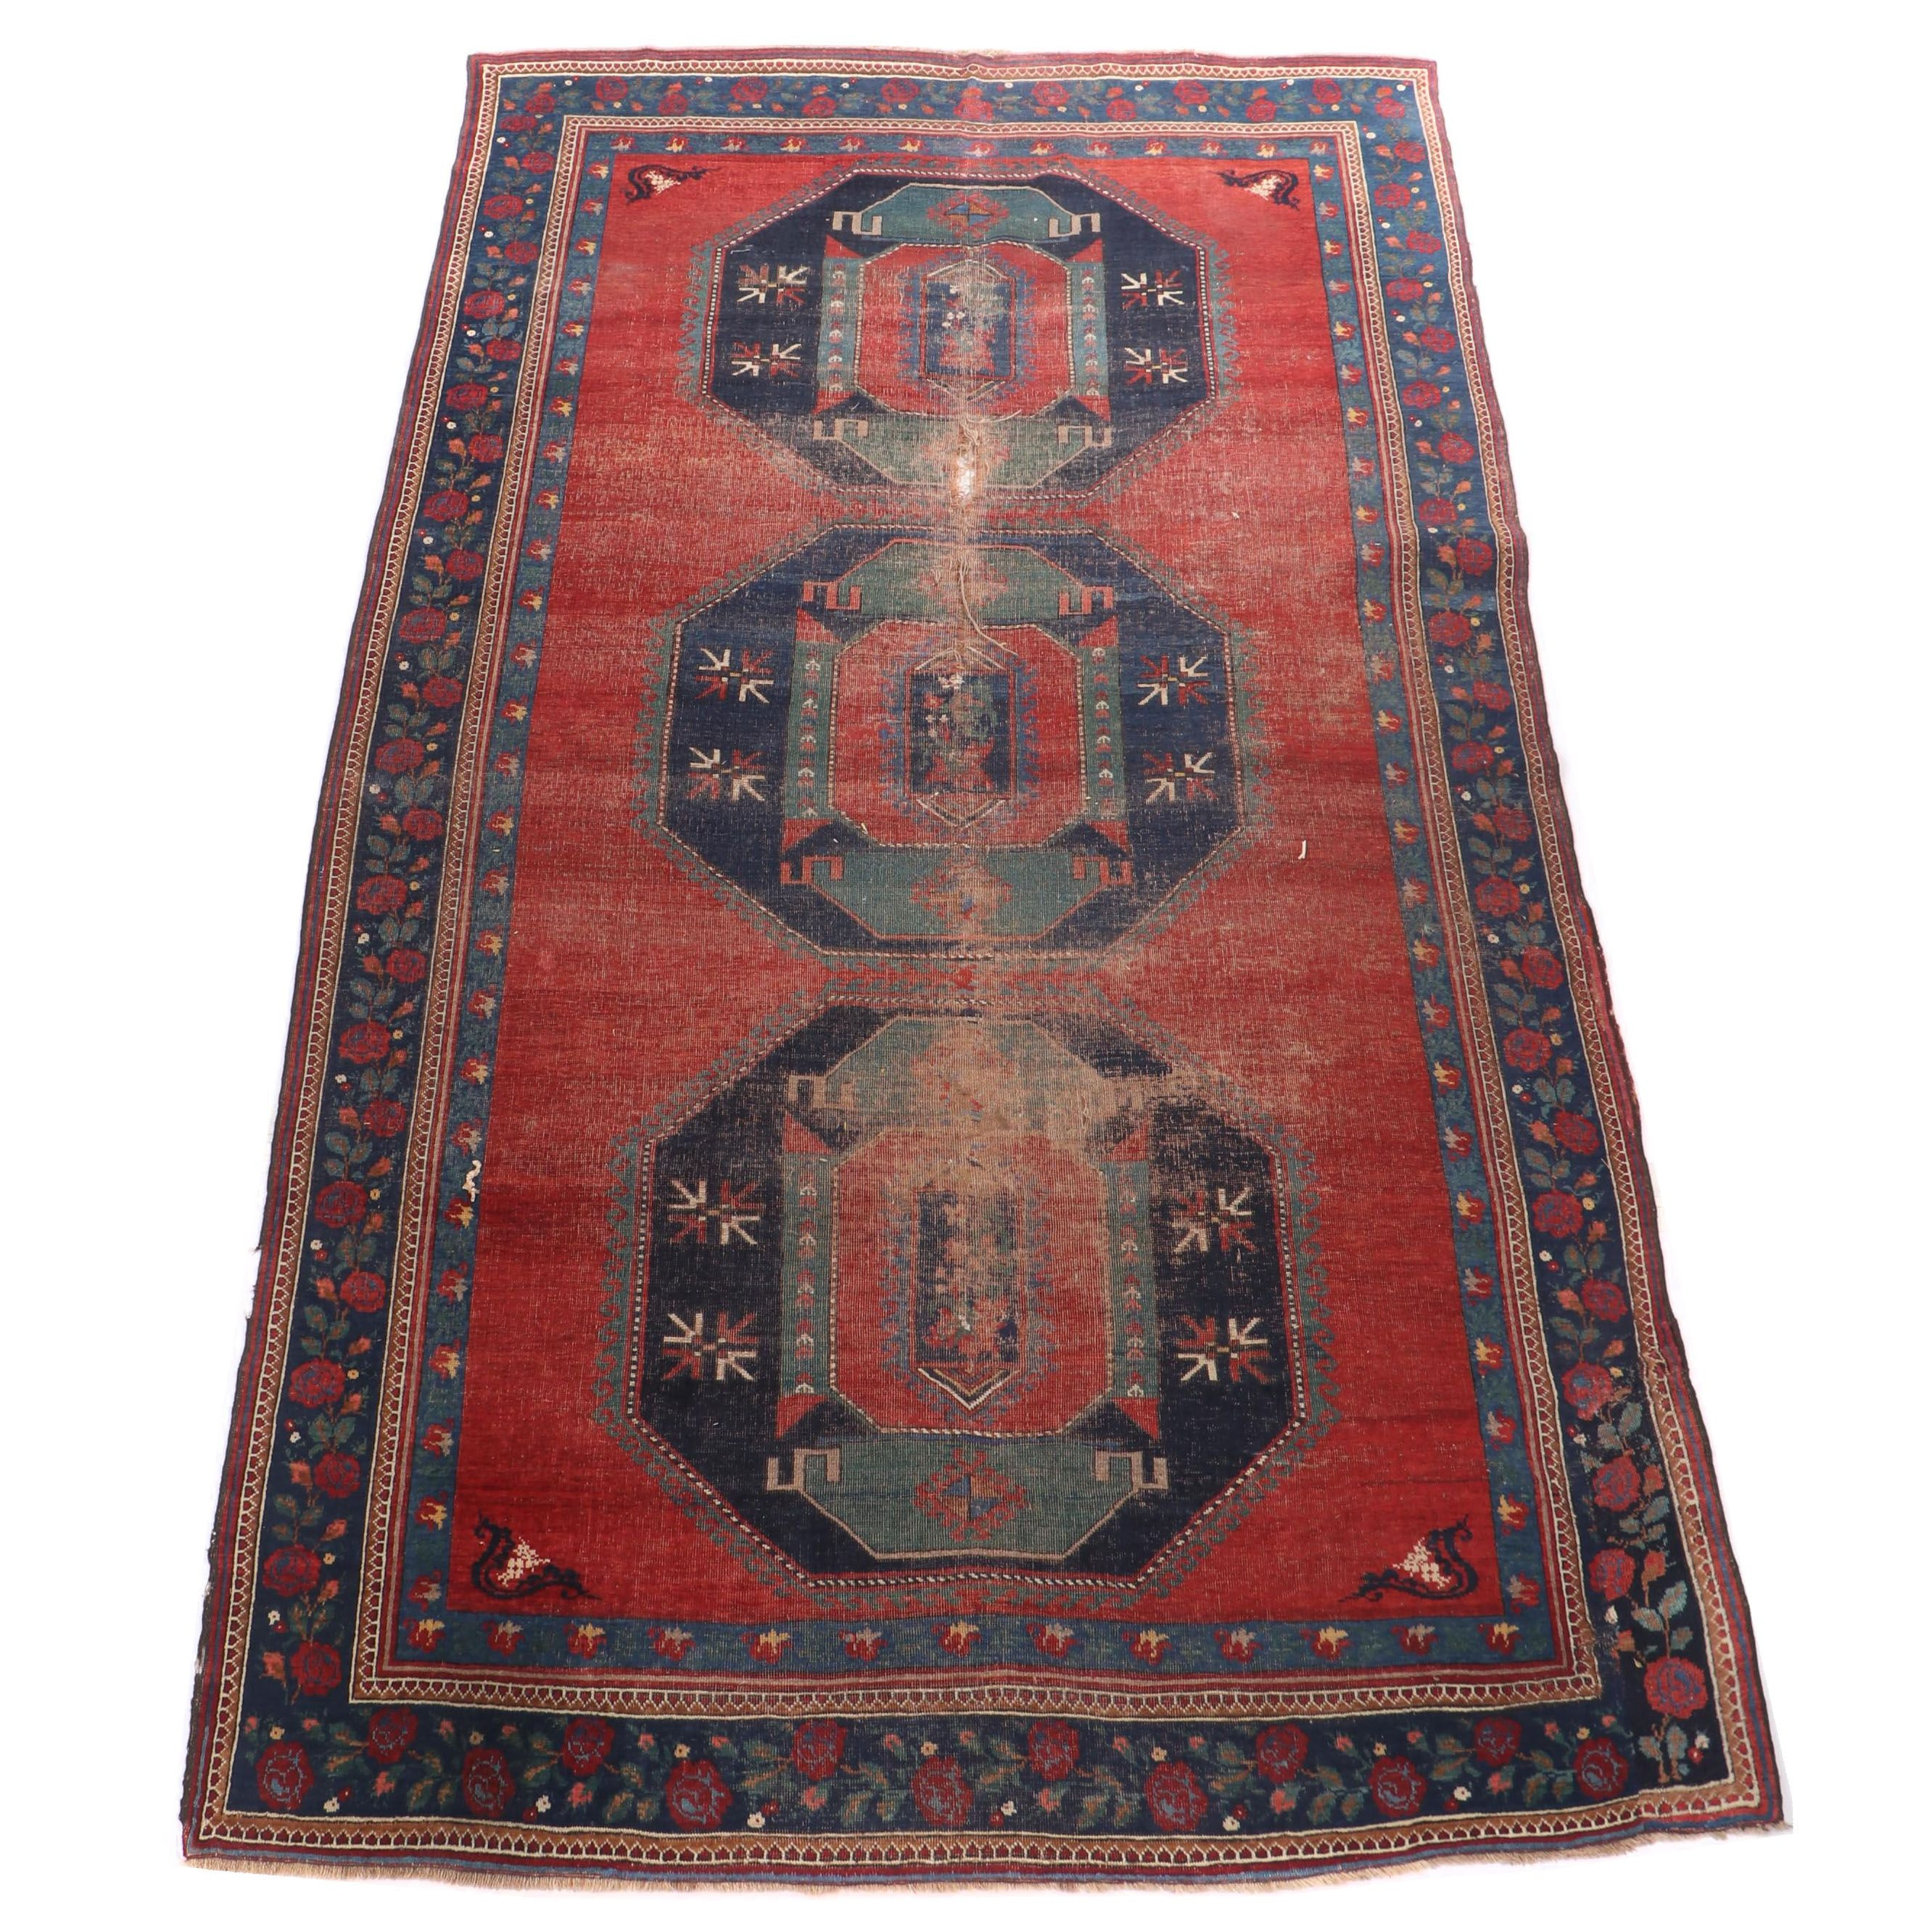 Hand-Knotted Caucasian Kazak Wool Room Sized Rug